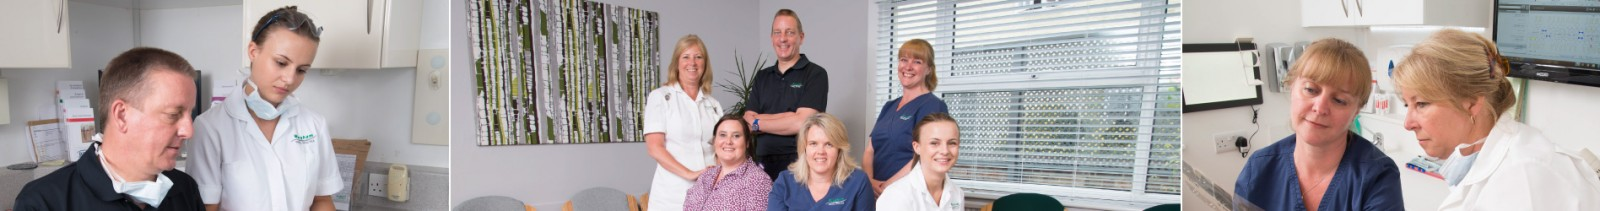 Martin Southon, Karin Lewis, Hayley Owers, Karen Peers, and Ellie Bradley dentists at Wingham Dental Practice